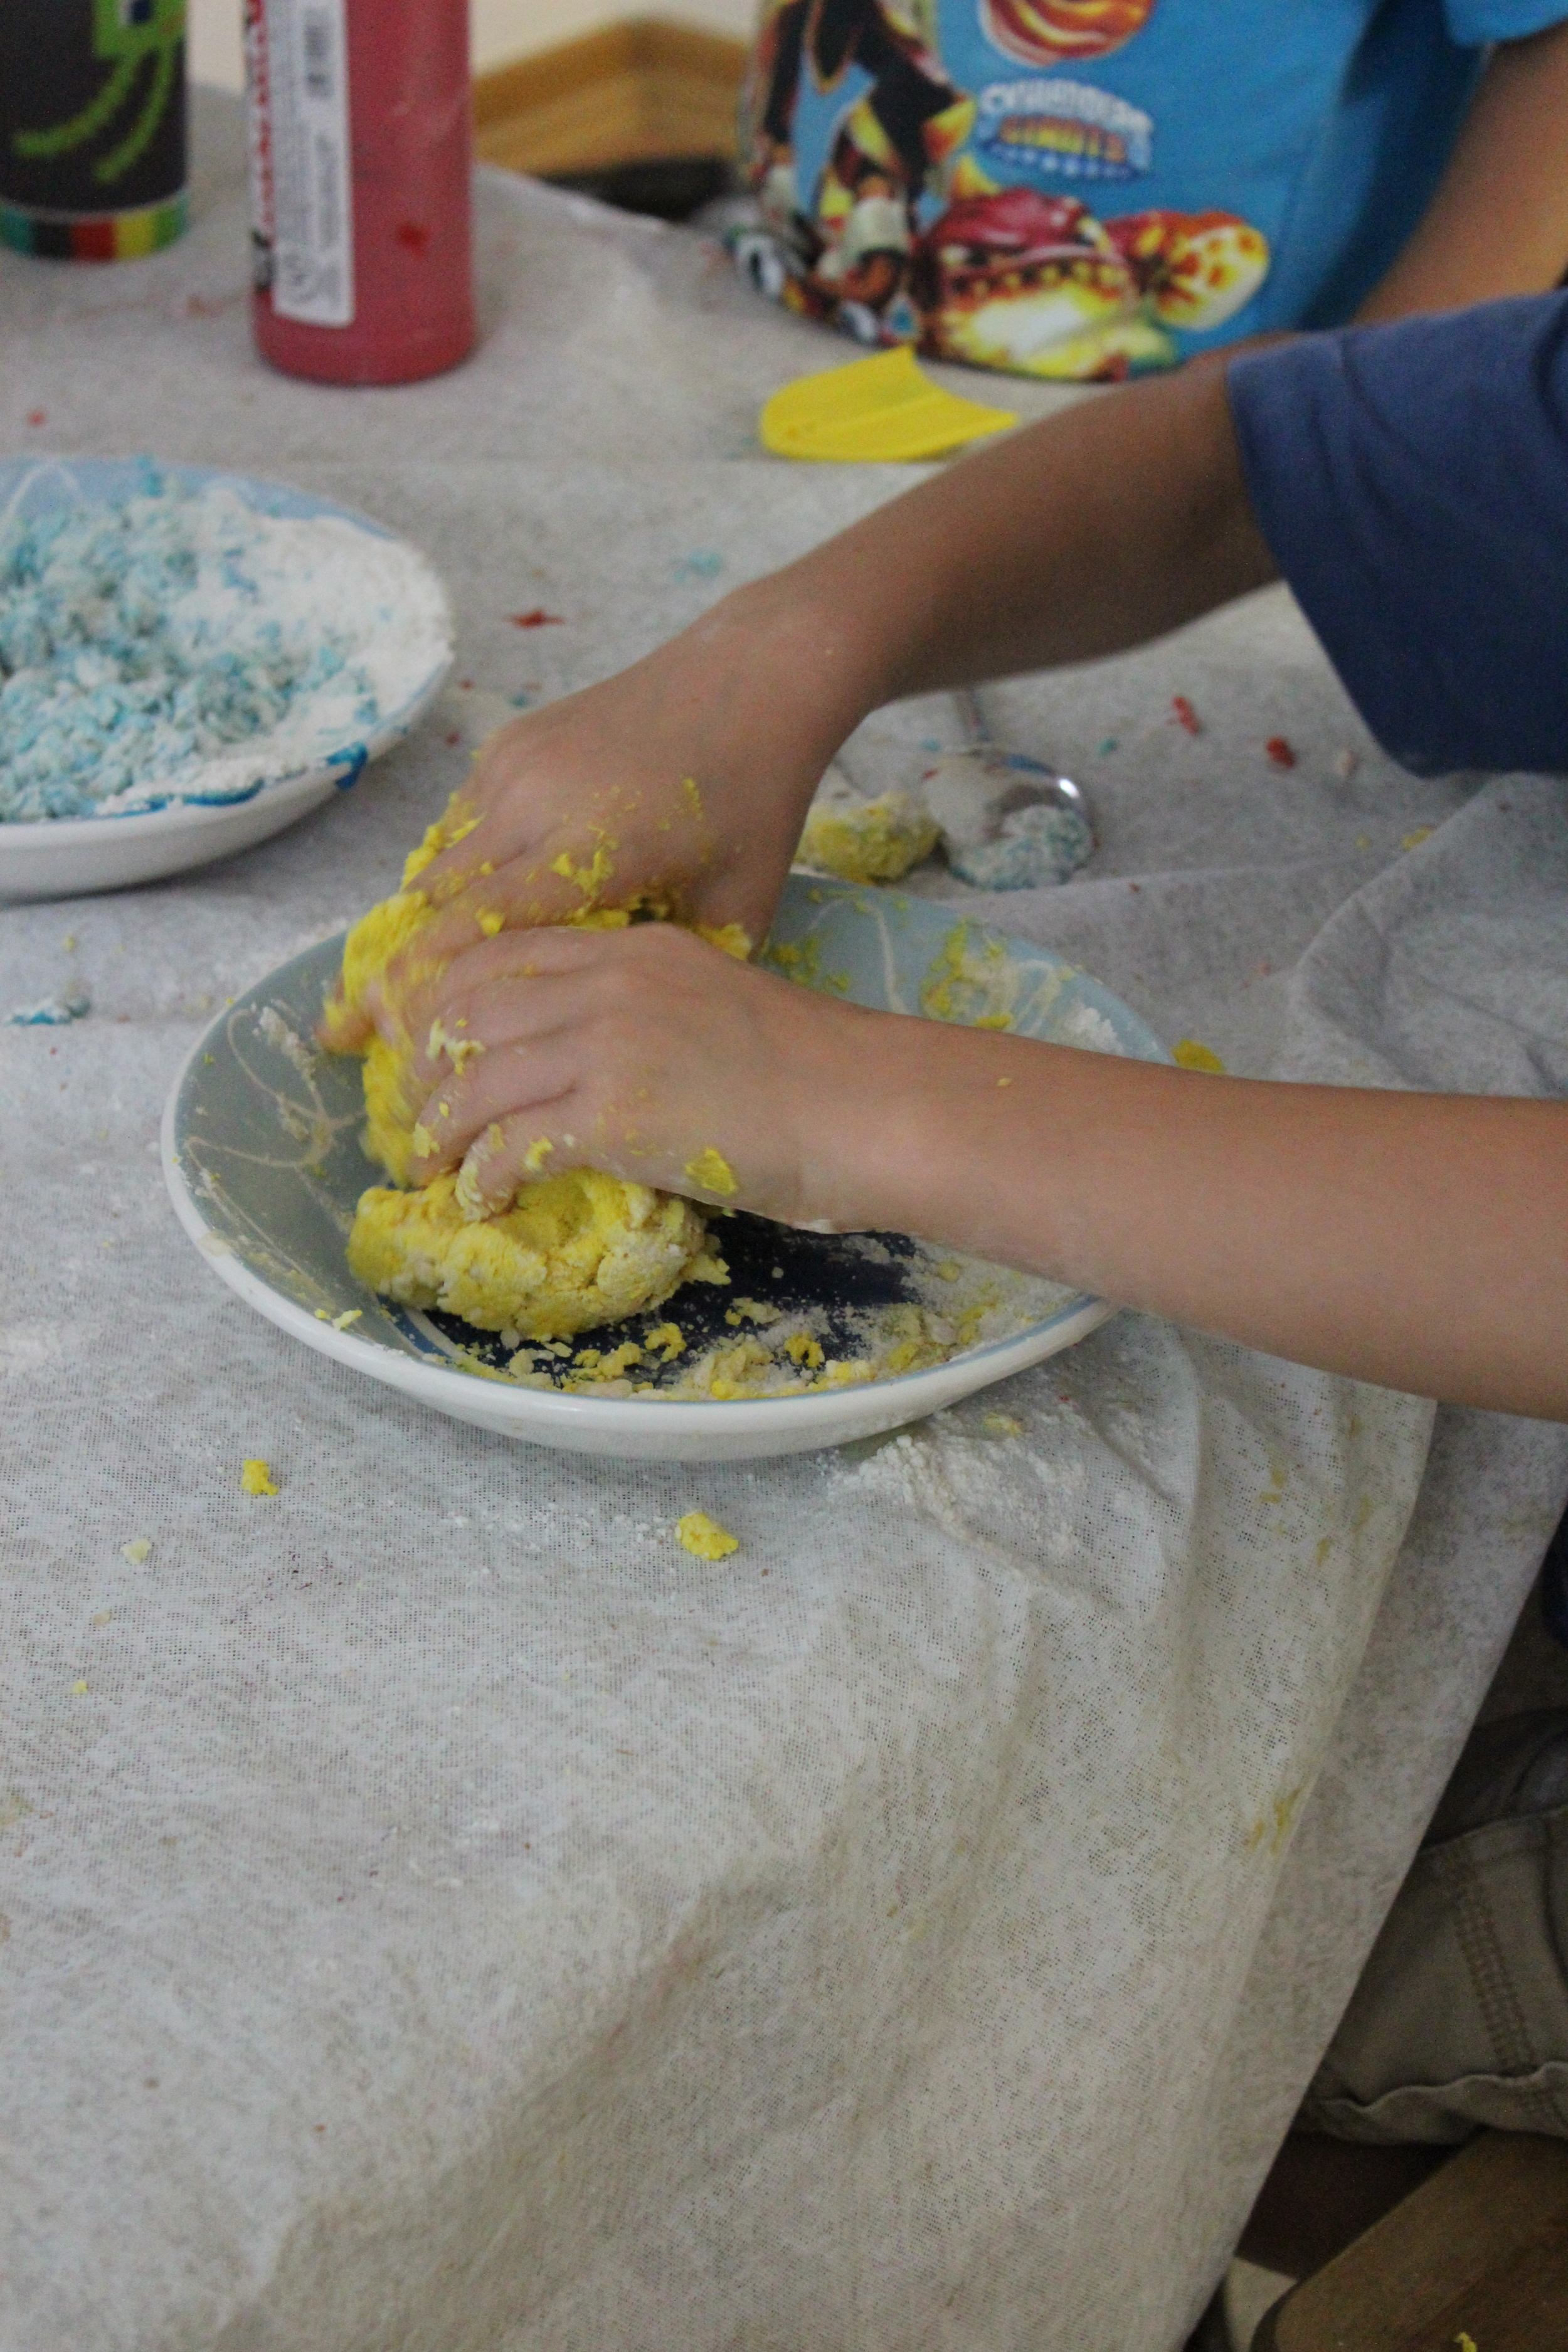 Working the ingredients into dough.